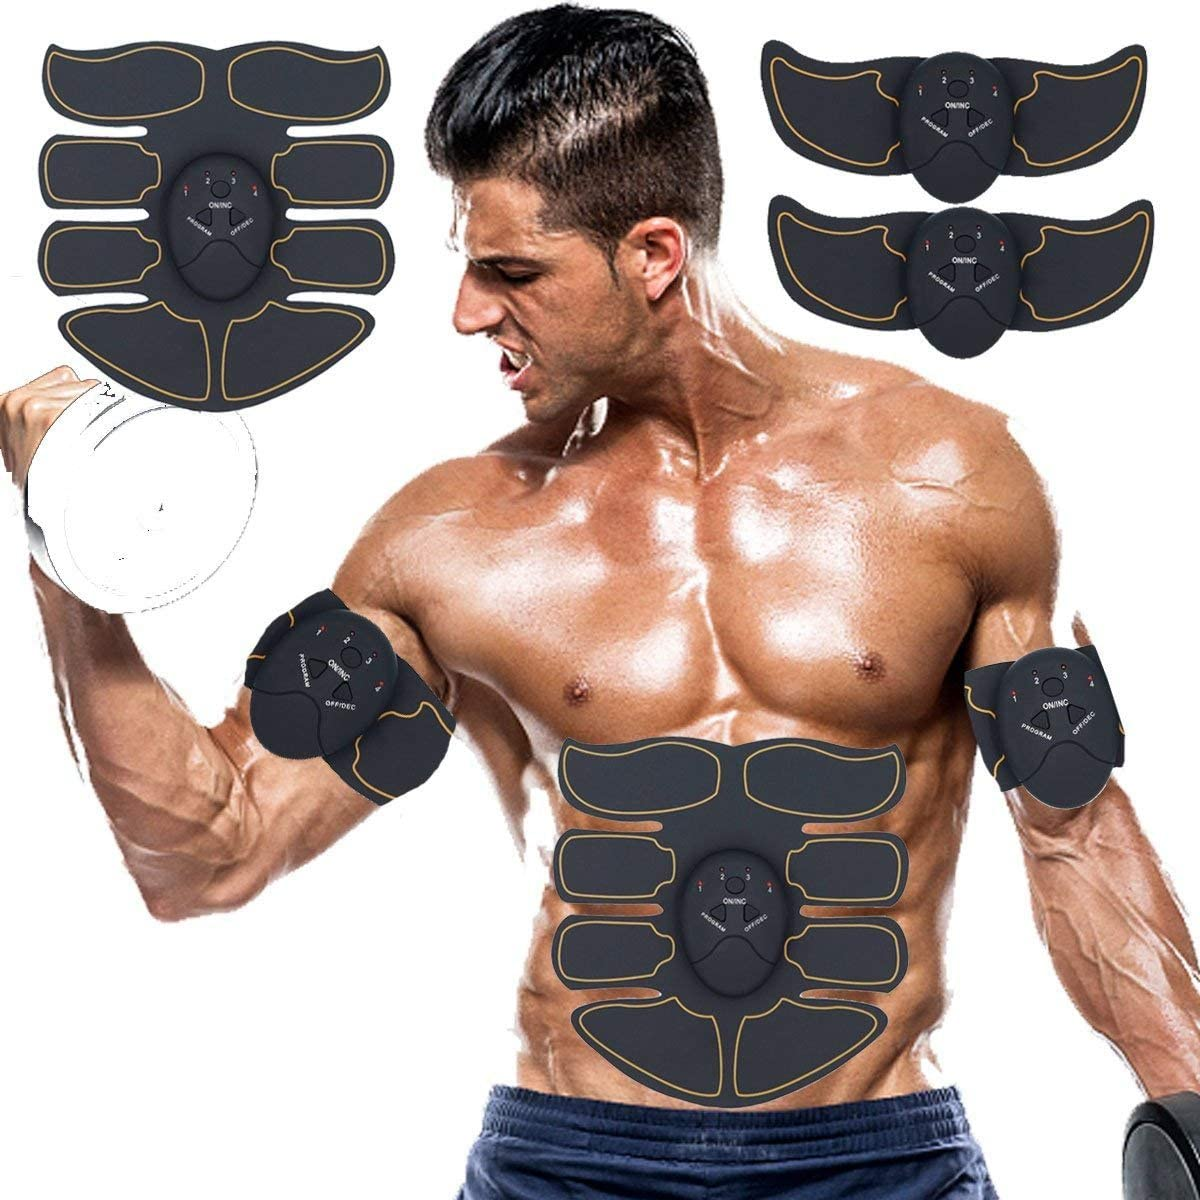 Sawyer Product Strong Abs Stimulator Portable Gym Workout Training and Home Office Fitness Toning Belt Equipment for Abdomen